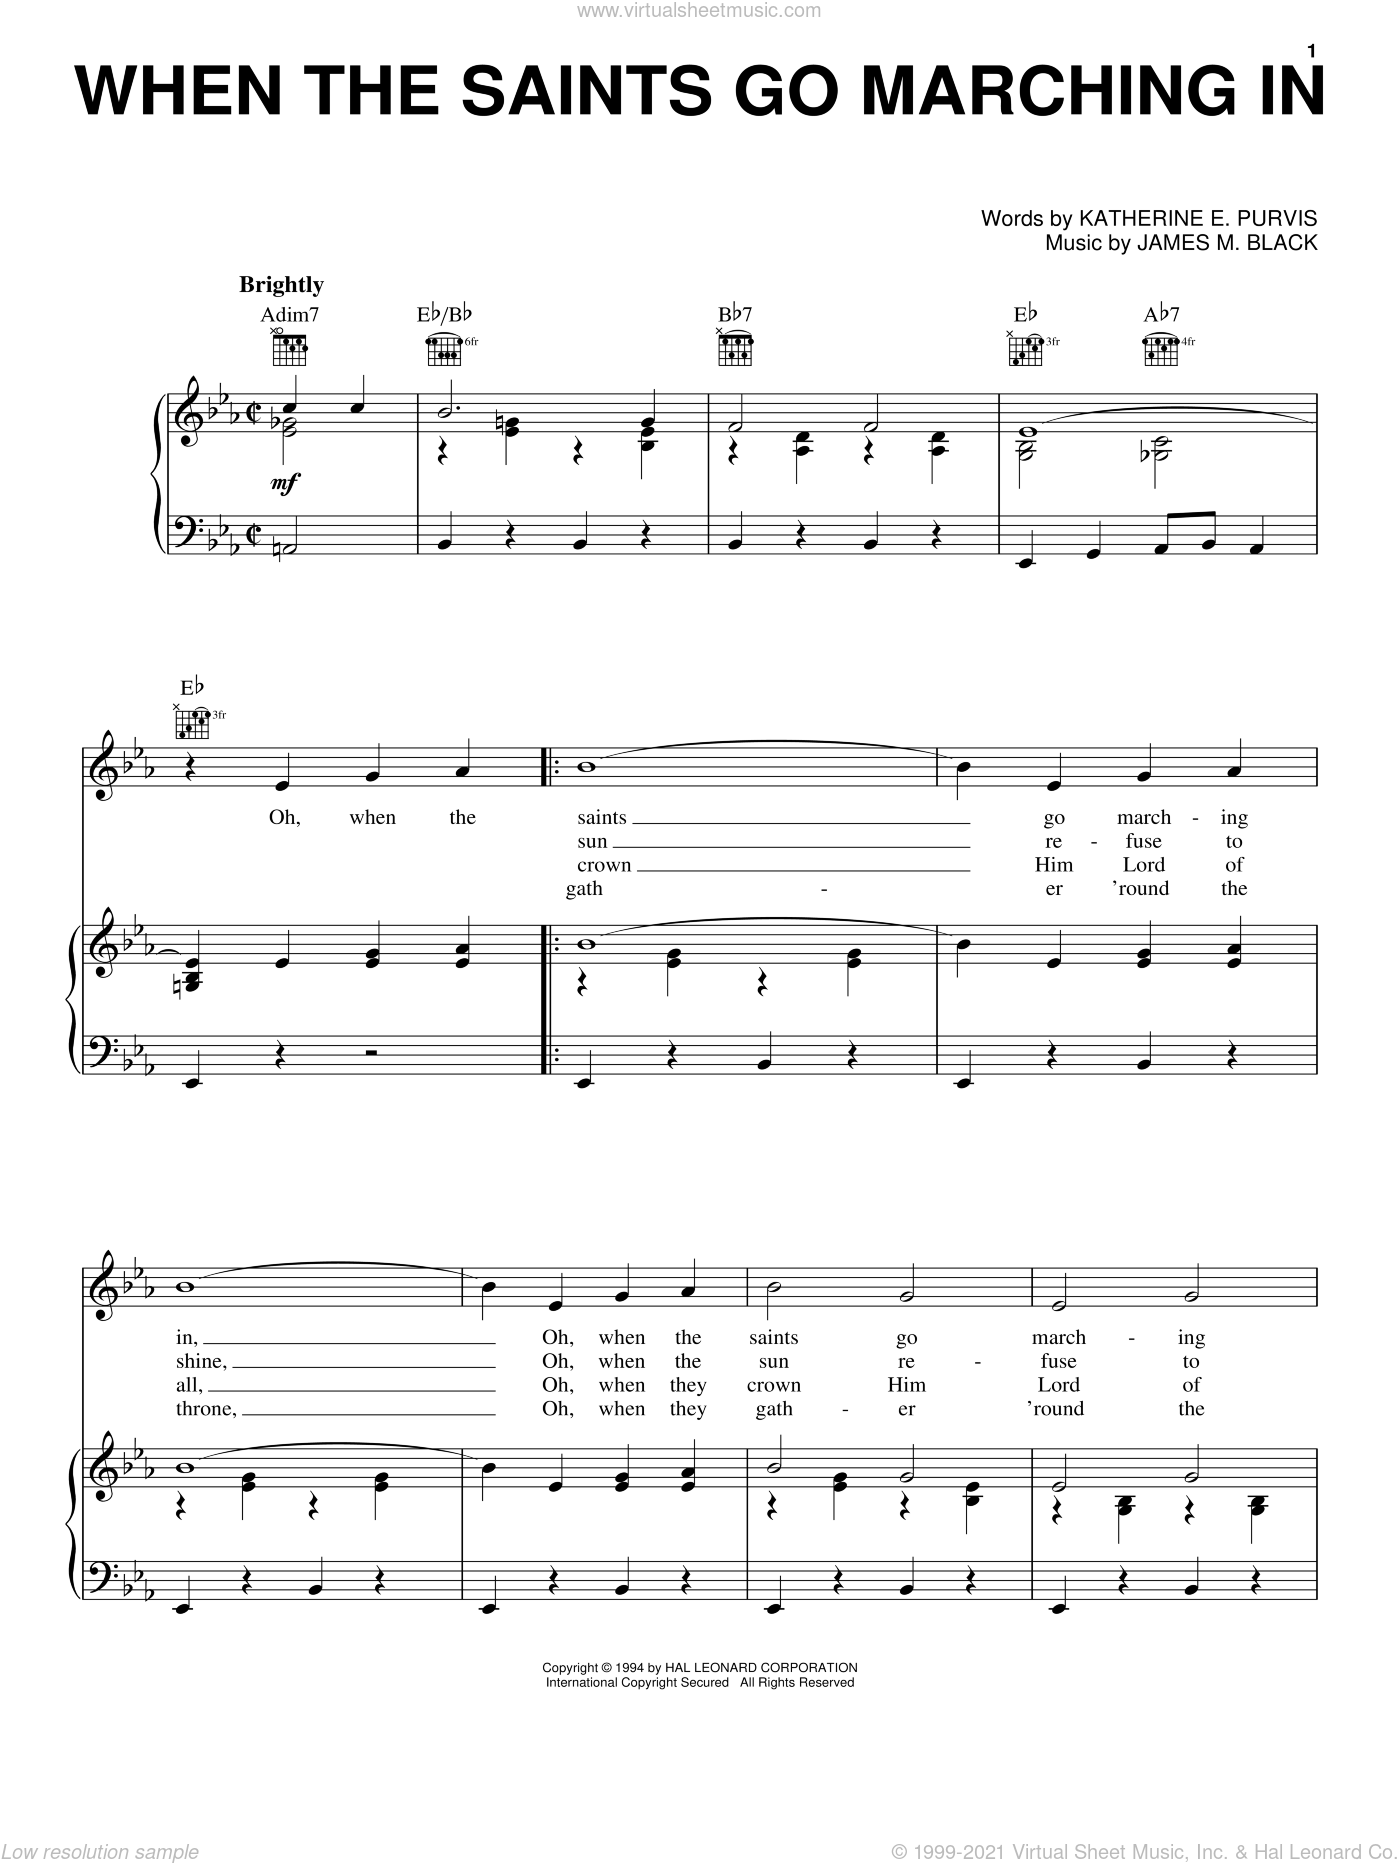 When The Saints Go Marching In sheet music for voice, piano or guitar by Katherine E. Purvis